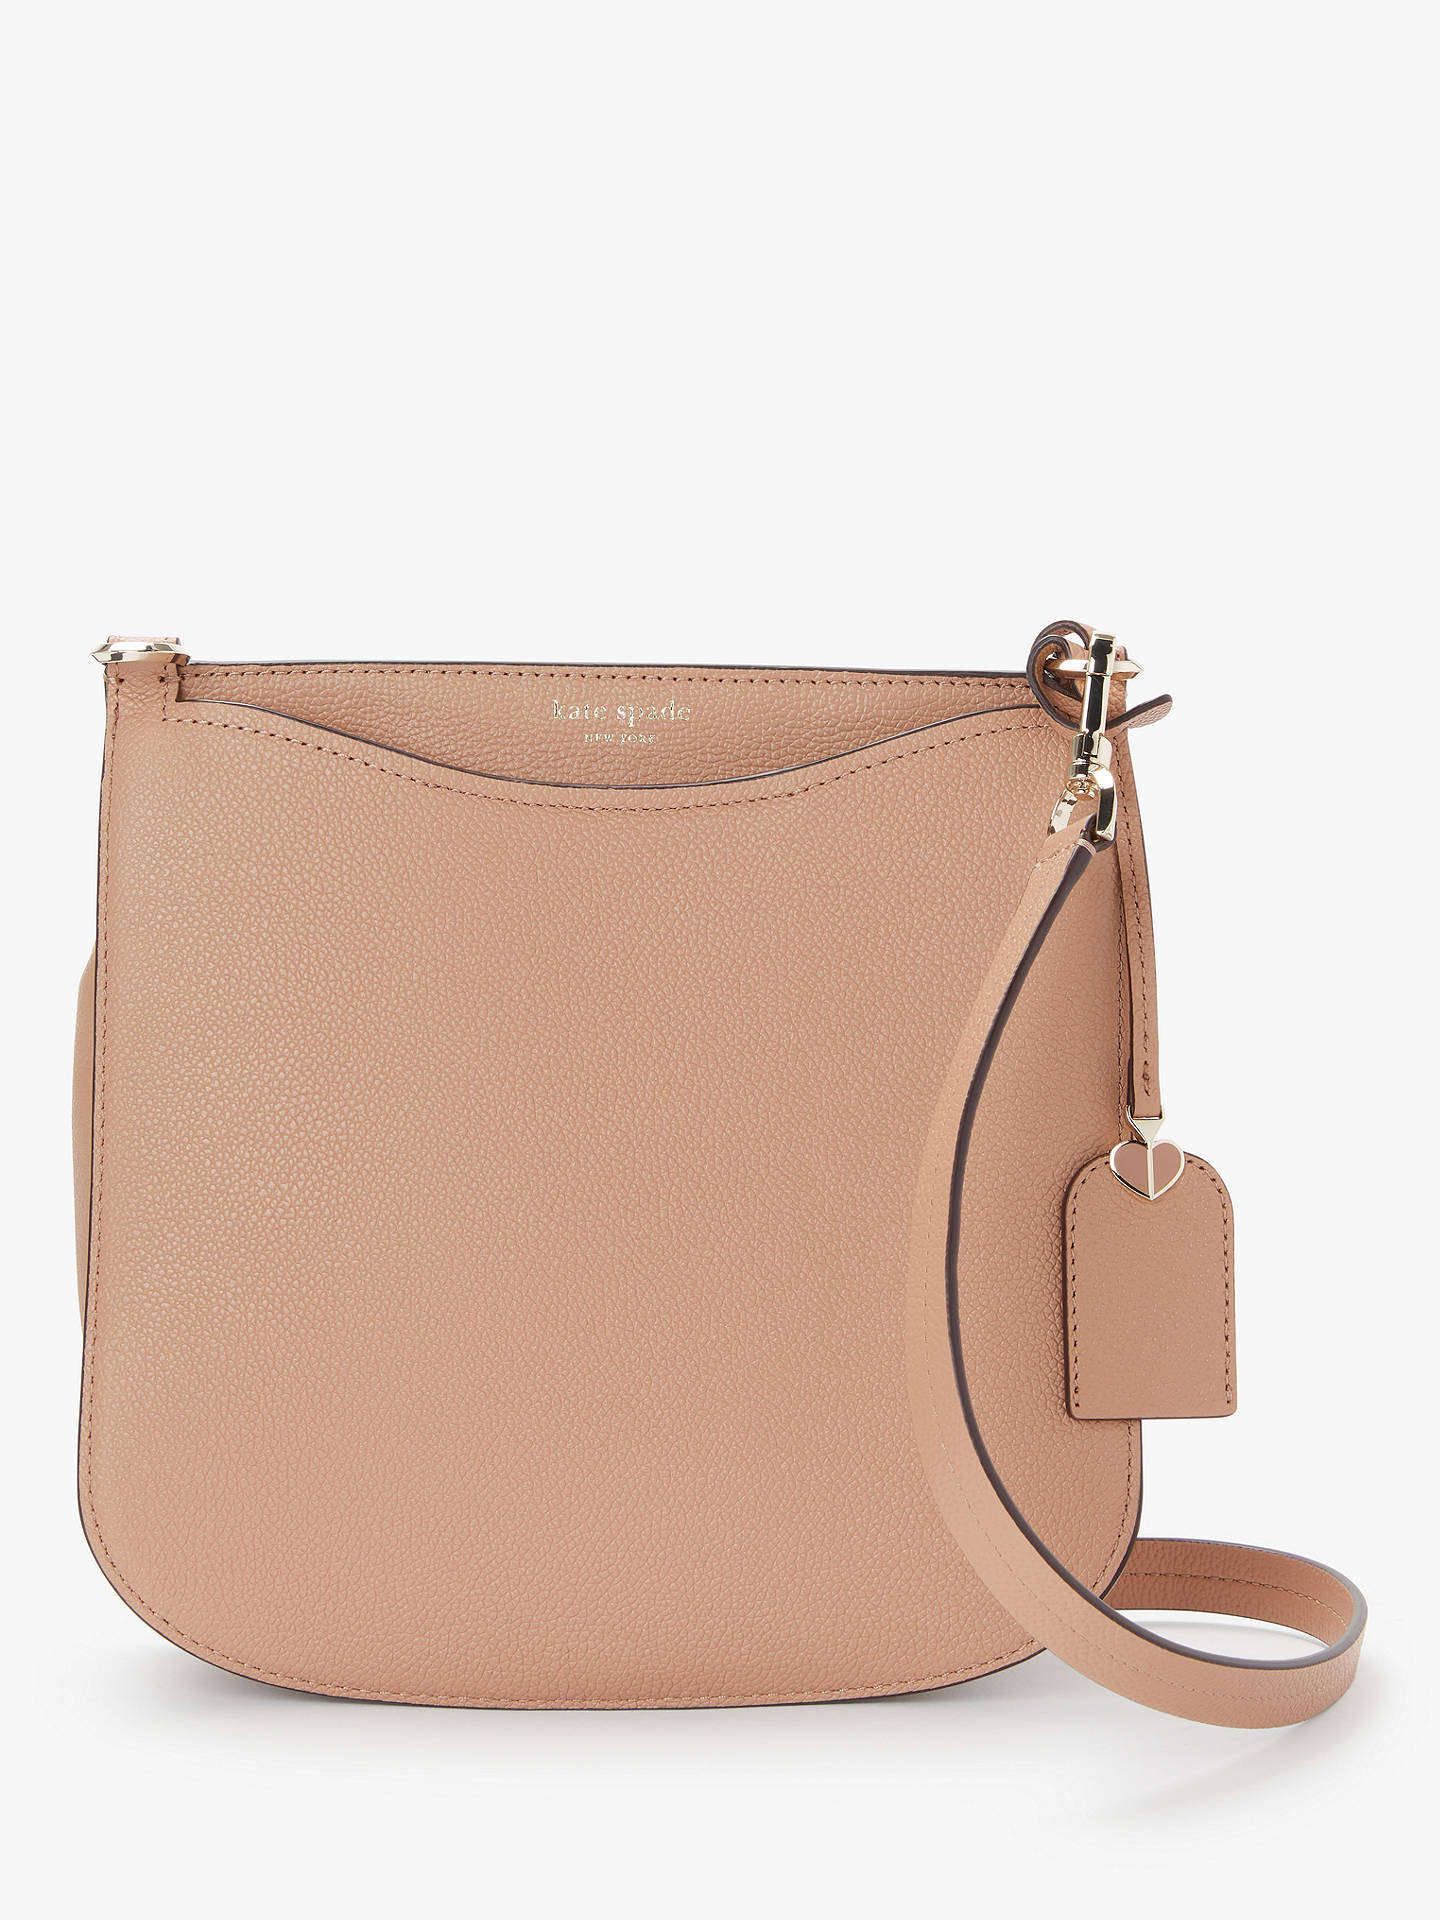 b77f51f62c77 Buykate spade new york Margaux Large Leather Cross Body Bag